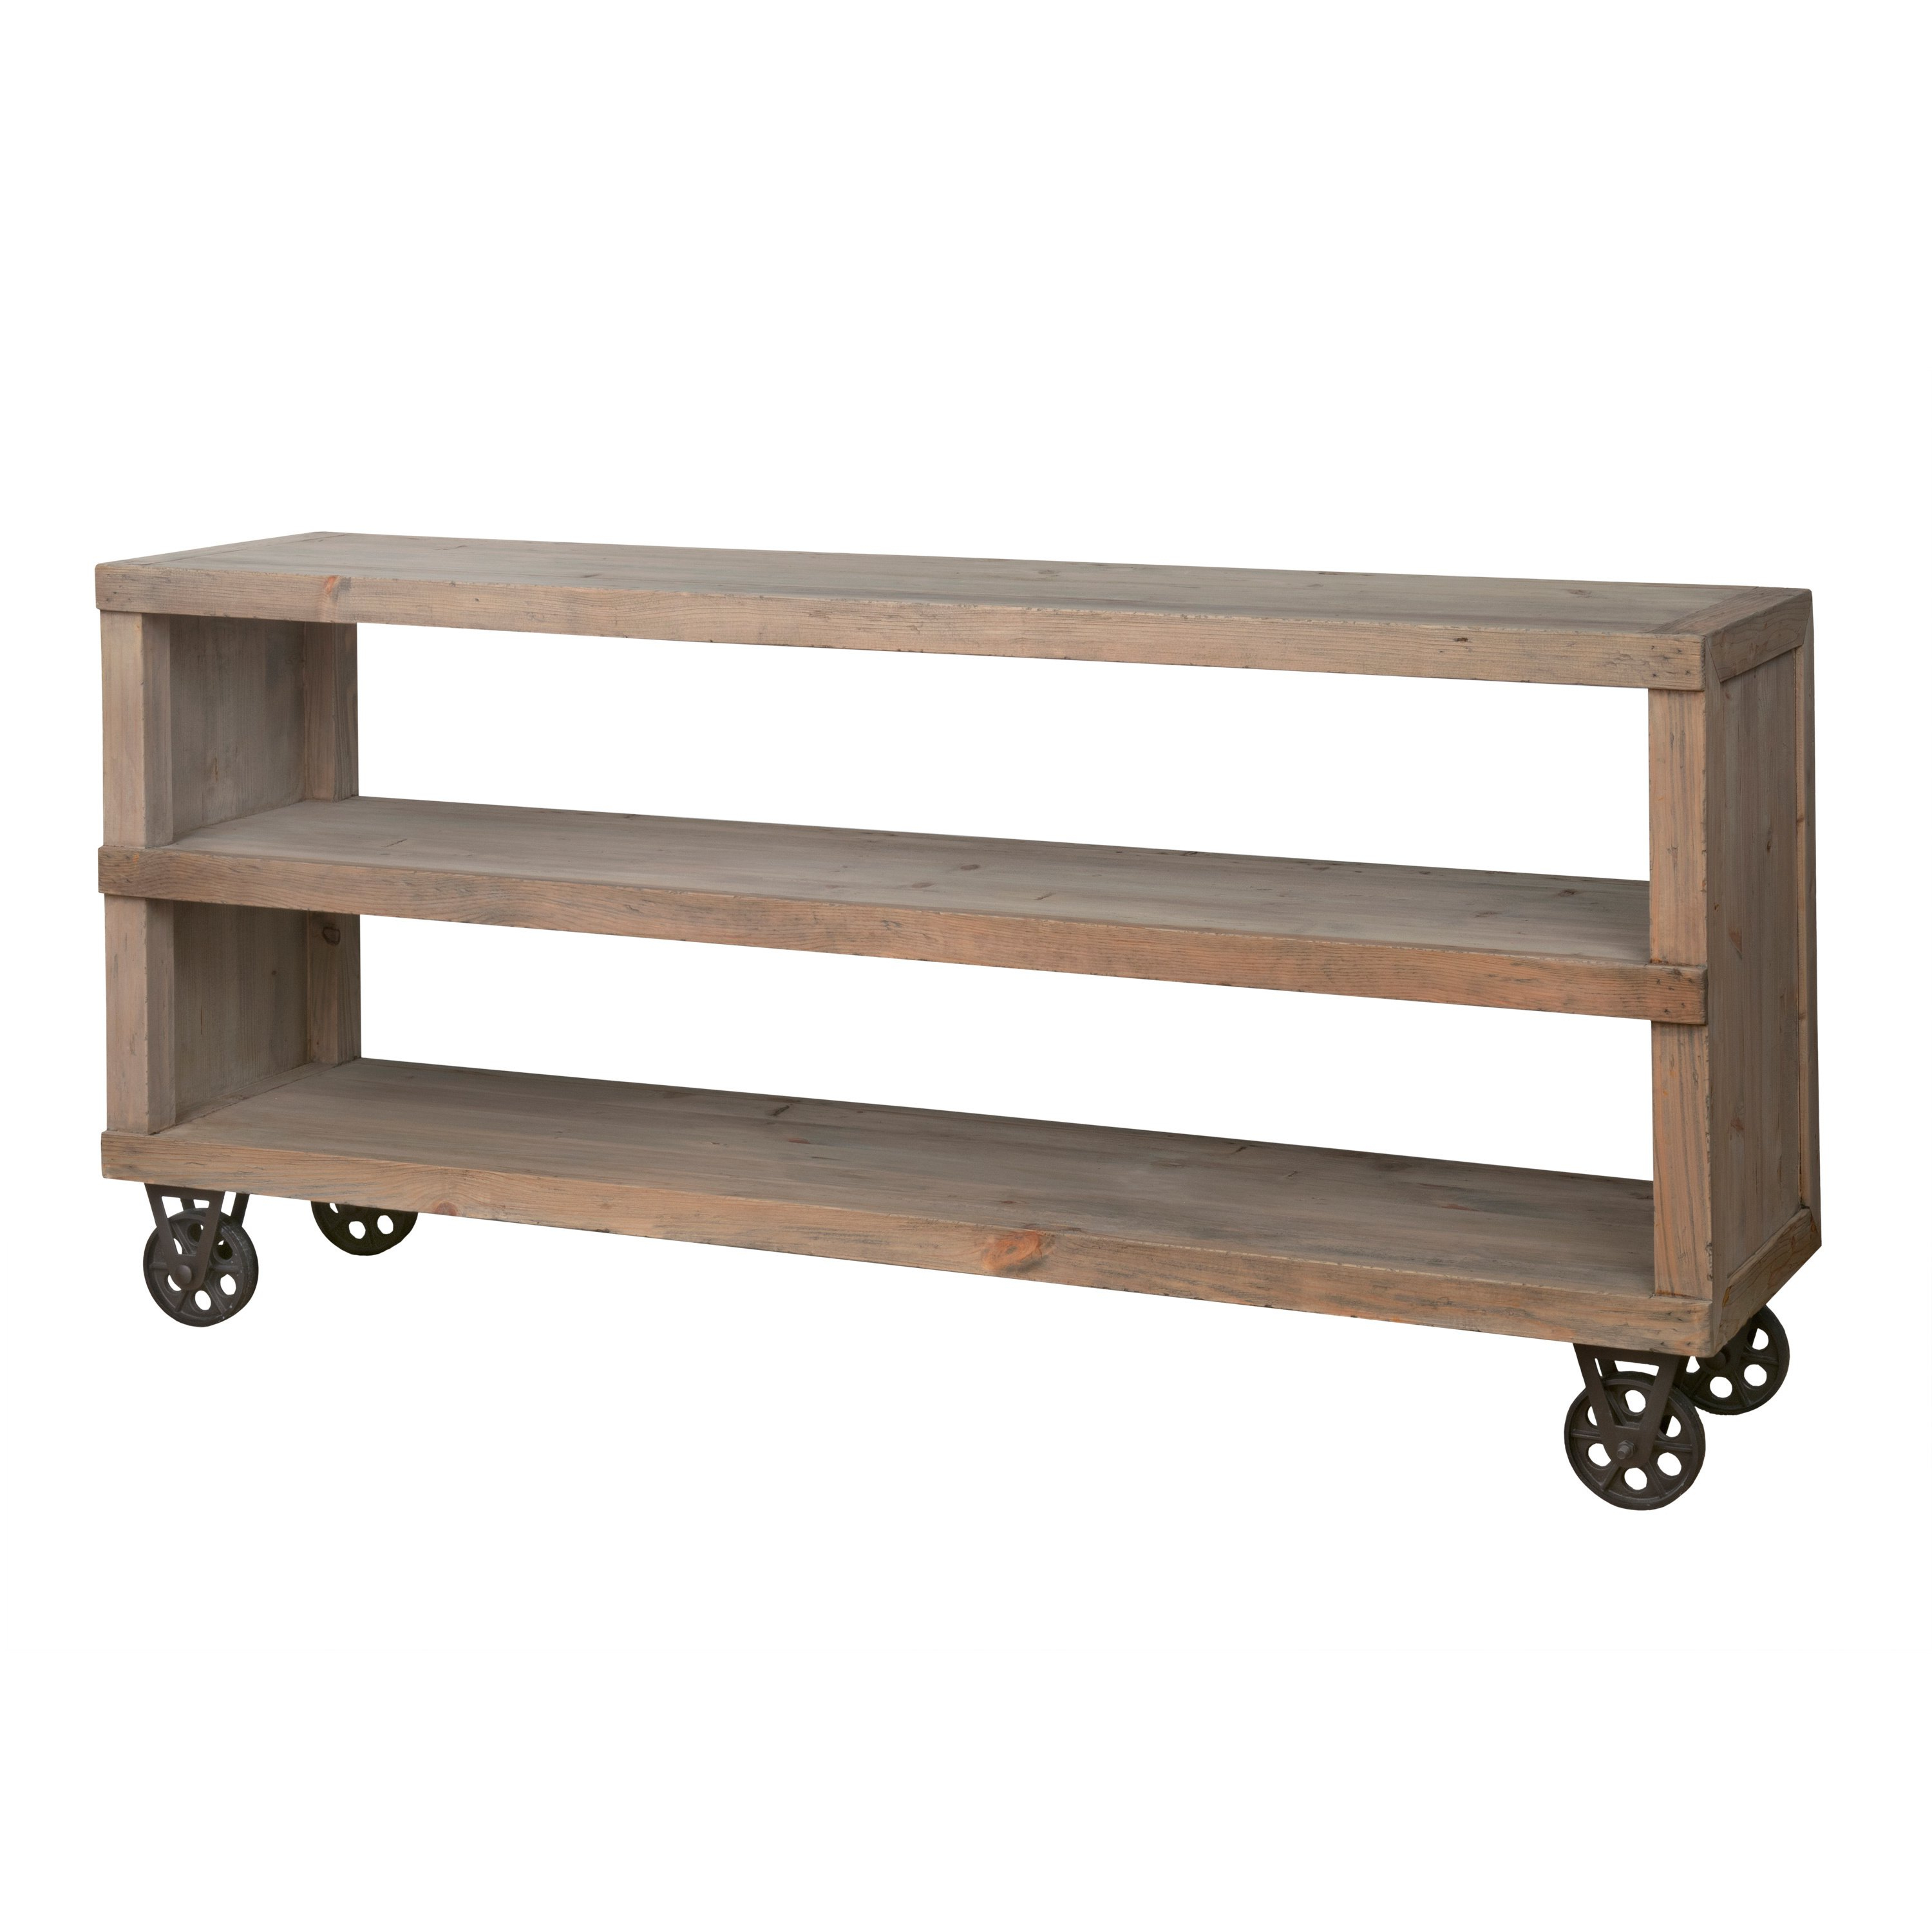 Caden 63 Inch Tv Stands Inside Well Known East At Main's Caden Console Table – Free Shipping Today – Overstock (View 10 of 20)